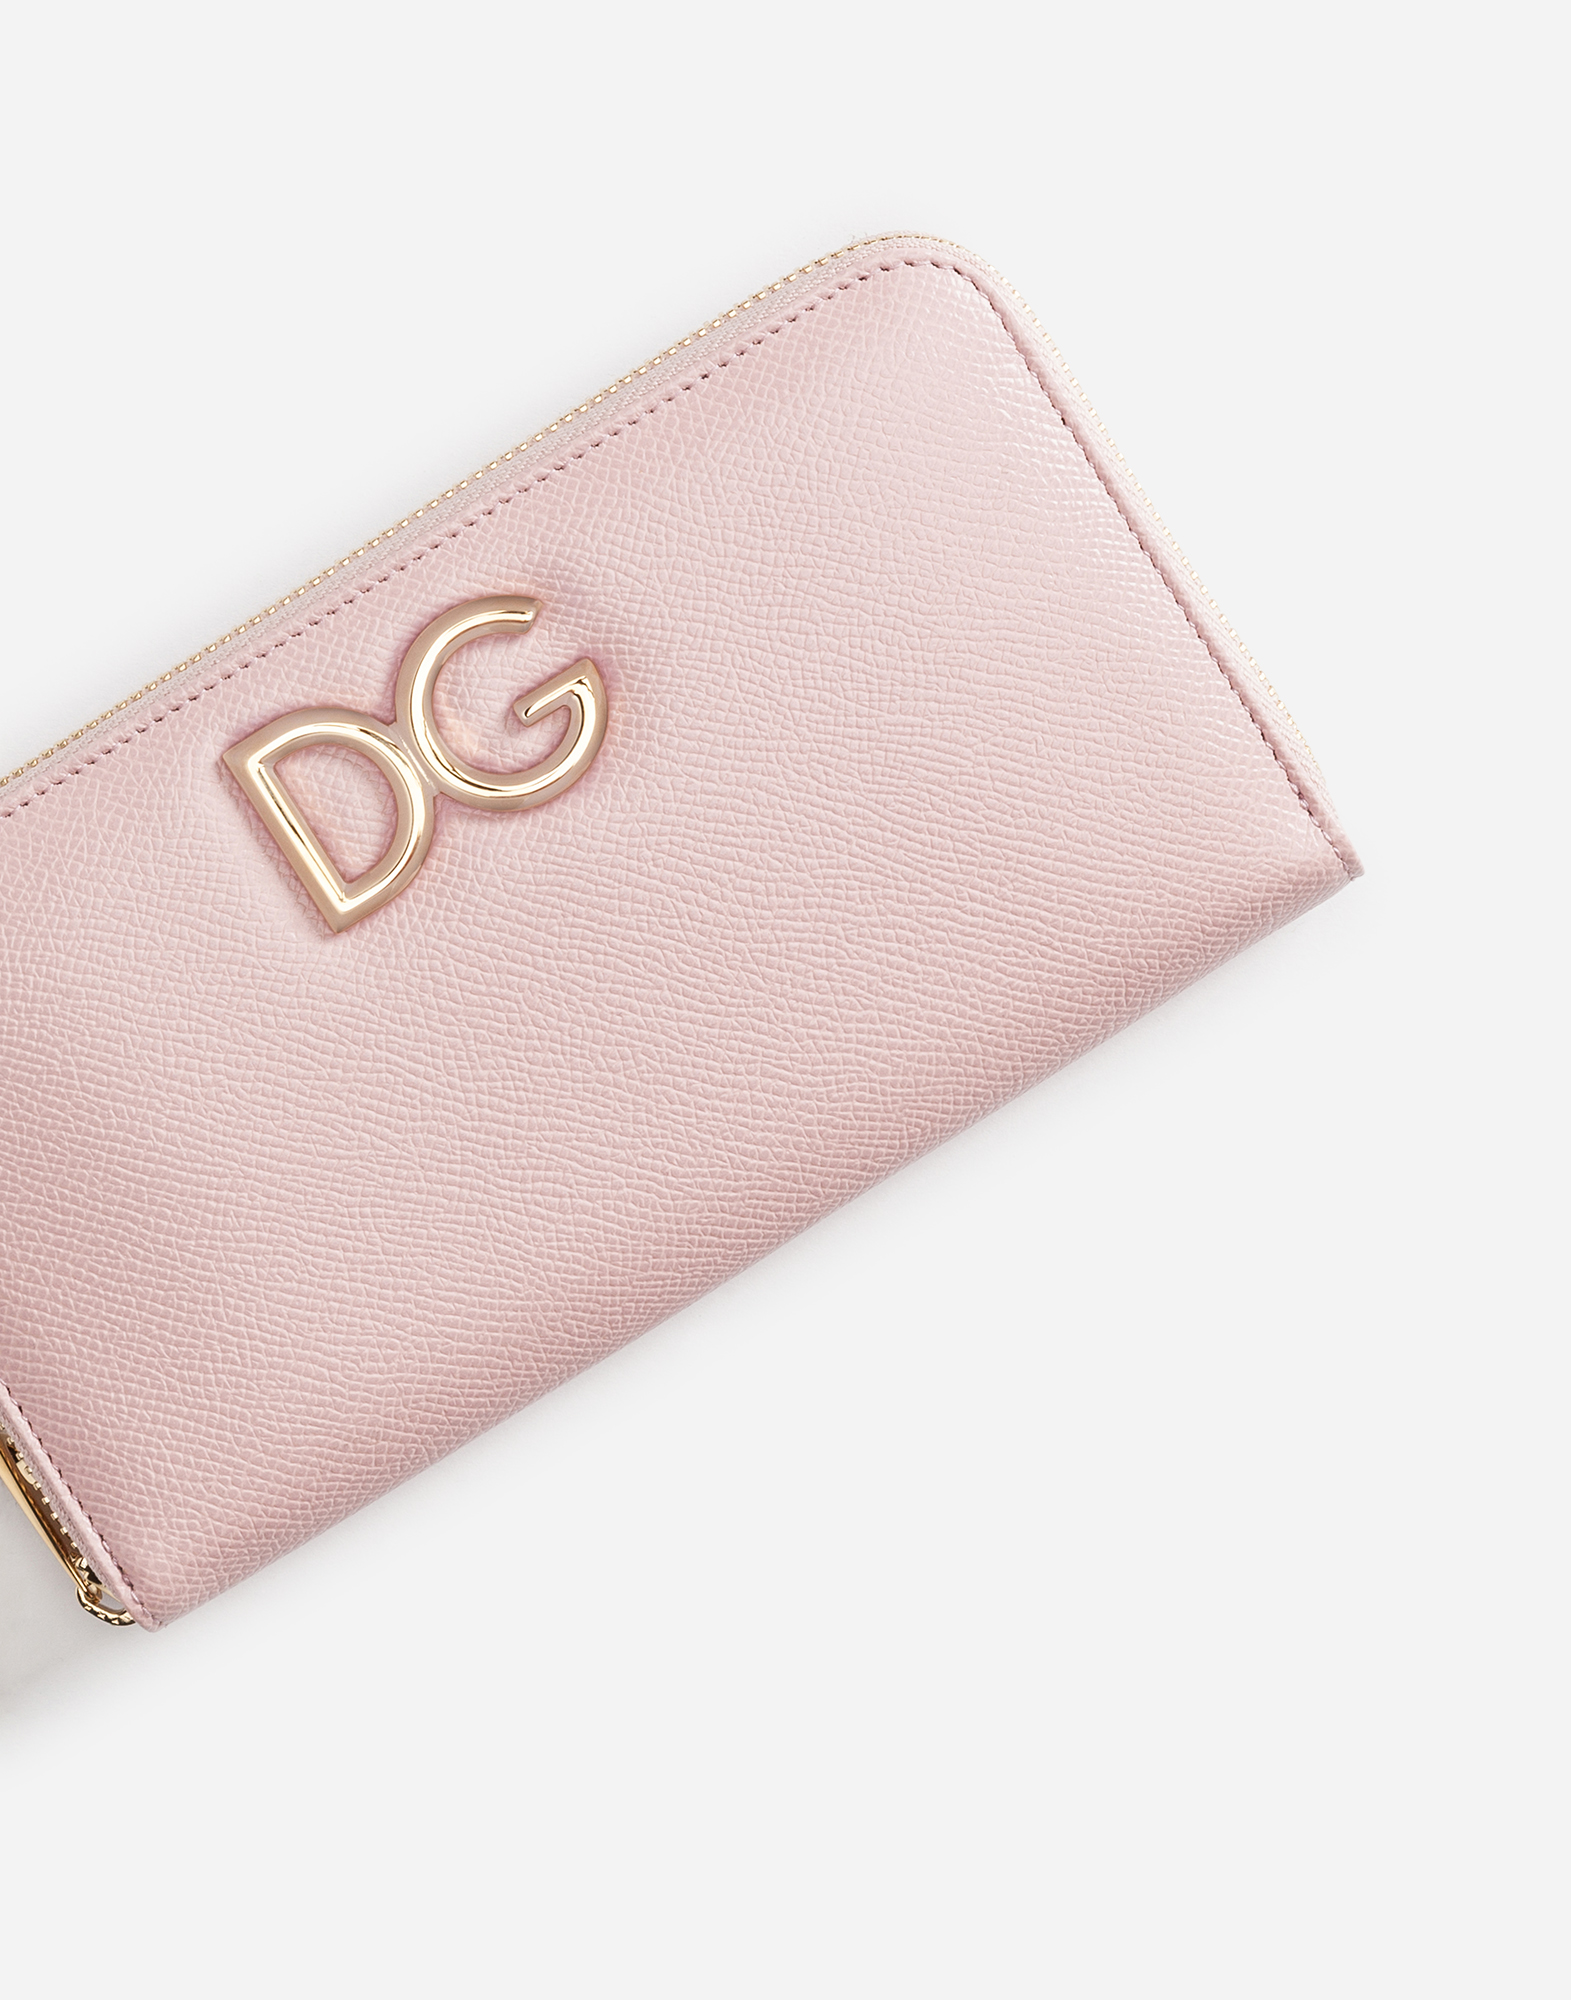 Dolce&Gabbana ZIP-AROUND LEATHER WALLET